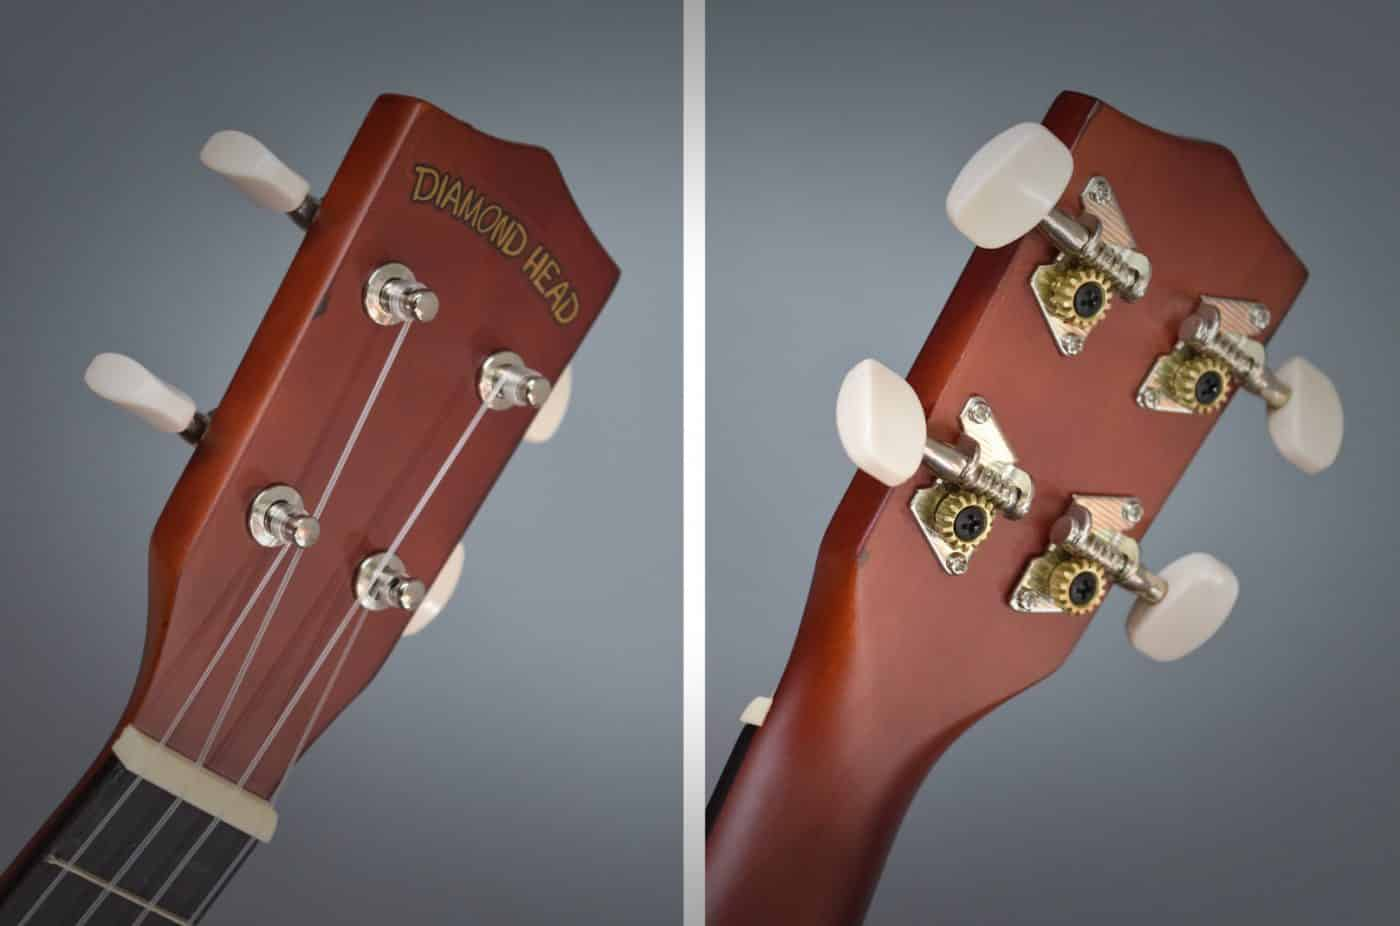 Diamond Head DU-150 Ukulele - Headstock and Tuners Front and Back